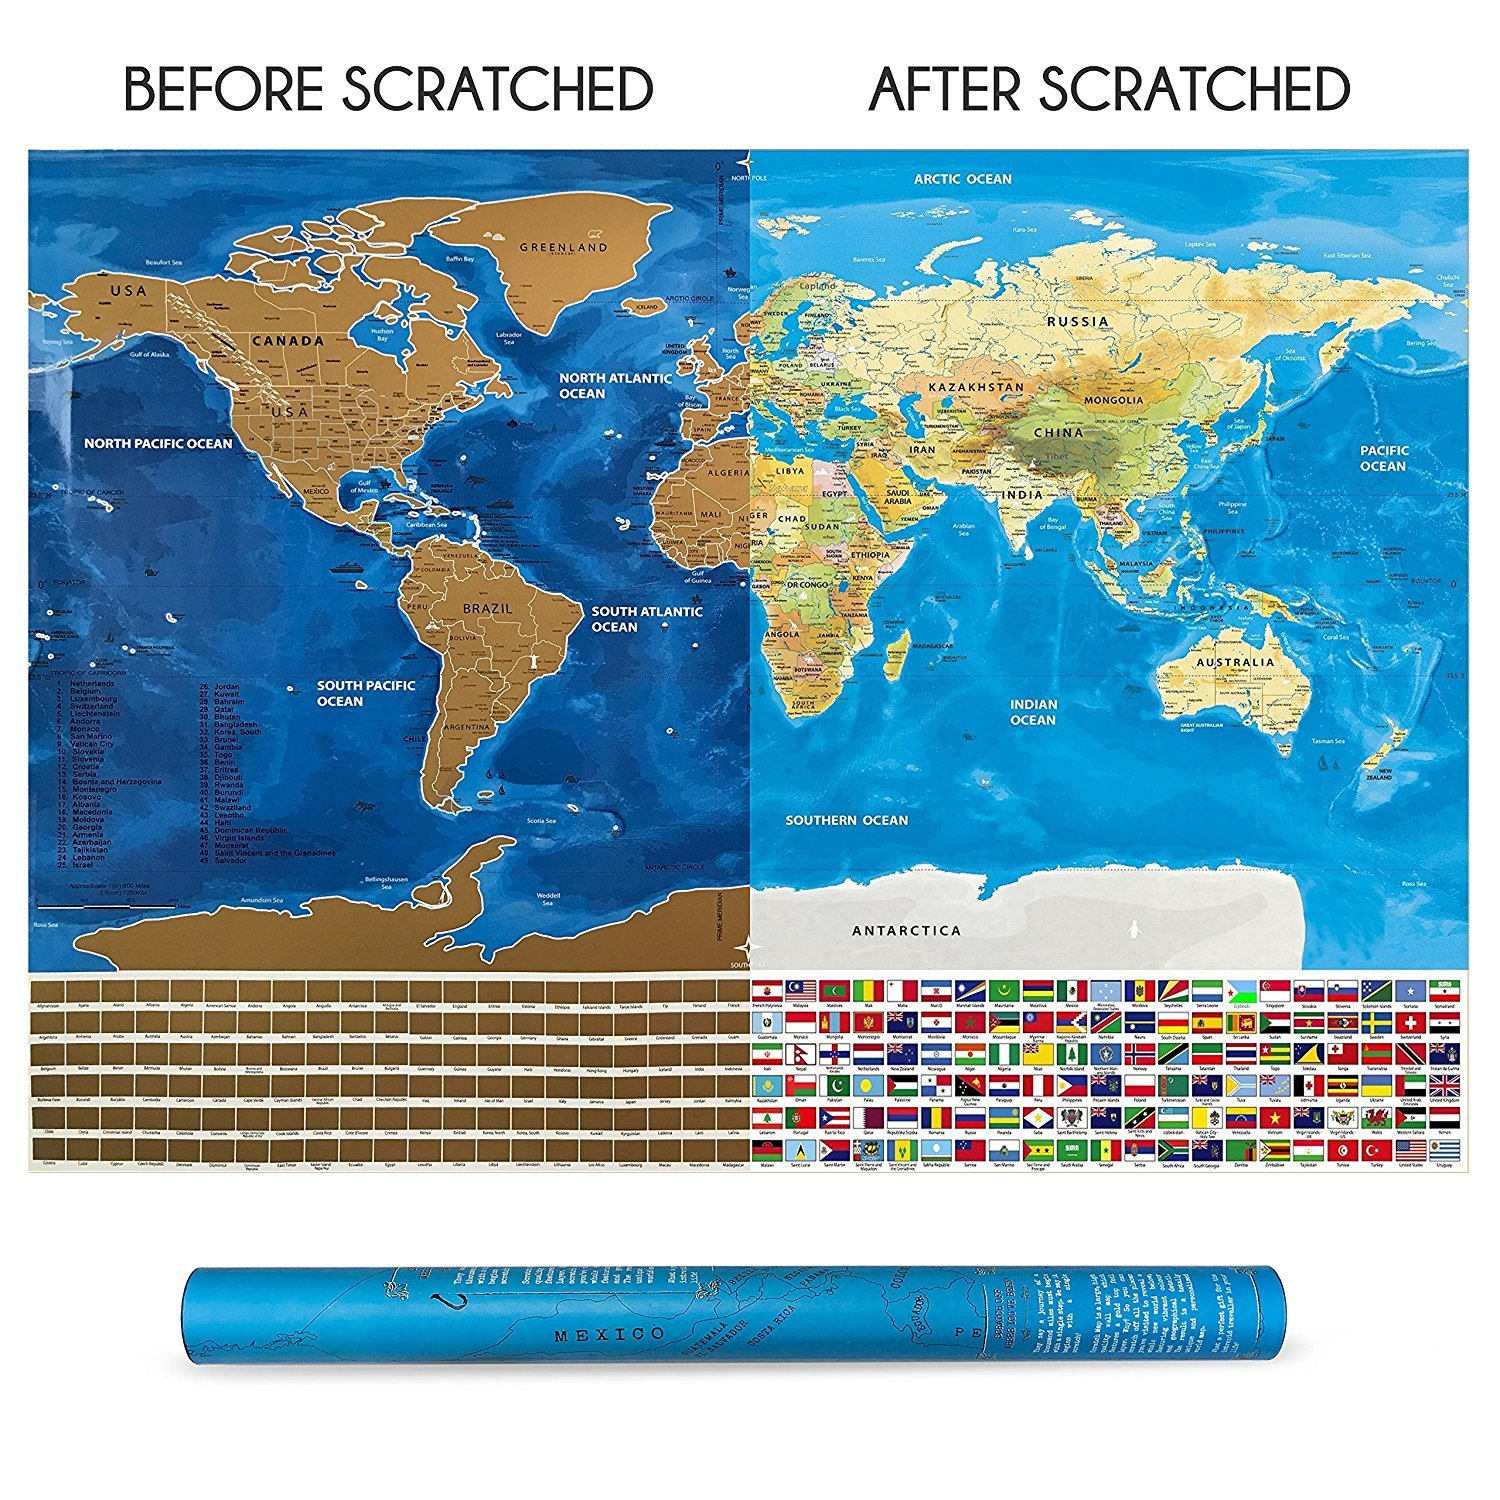 Scratchable World Map-By Vagabond-Scratch Off Map with Country Flags, Detailed US States - Scratch Off World Map - LARGE colorful 32 x 22.5 inches Poster size - Perfect Gift for the Traveler!